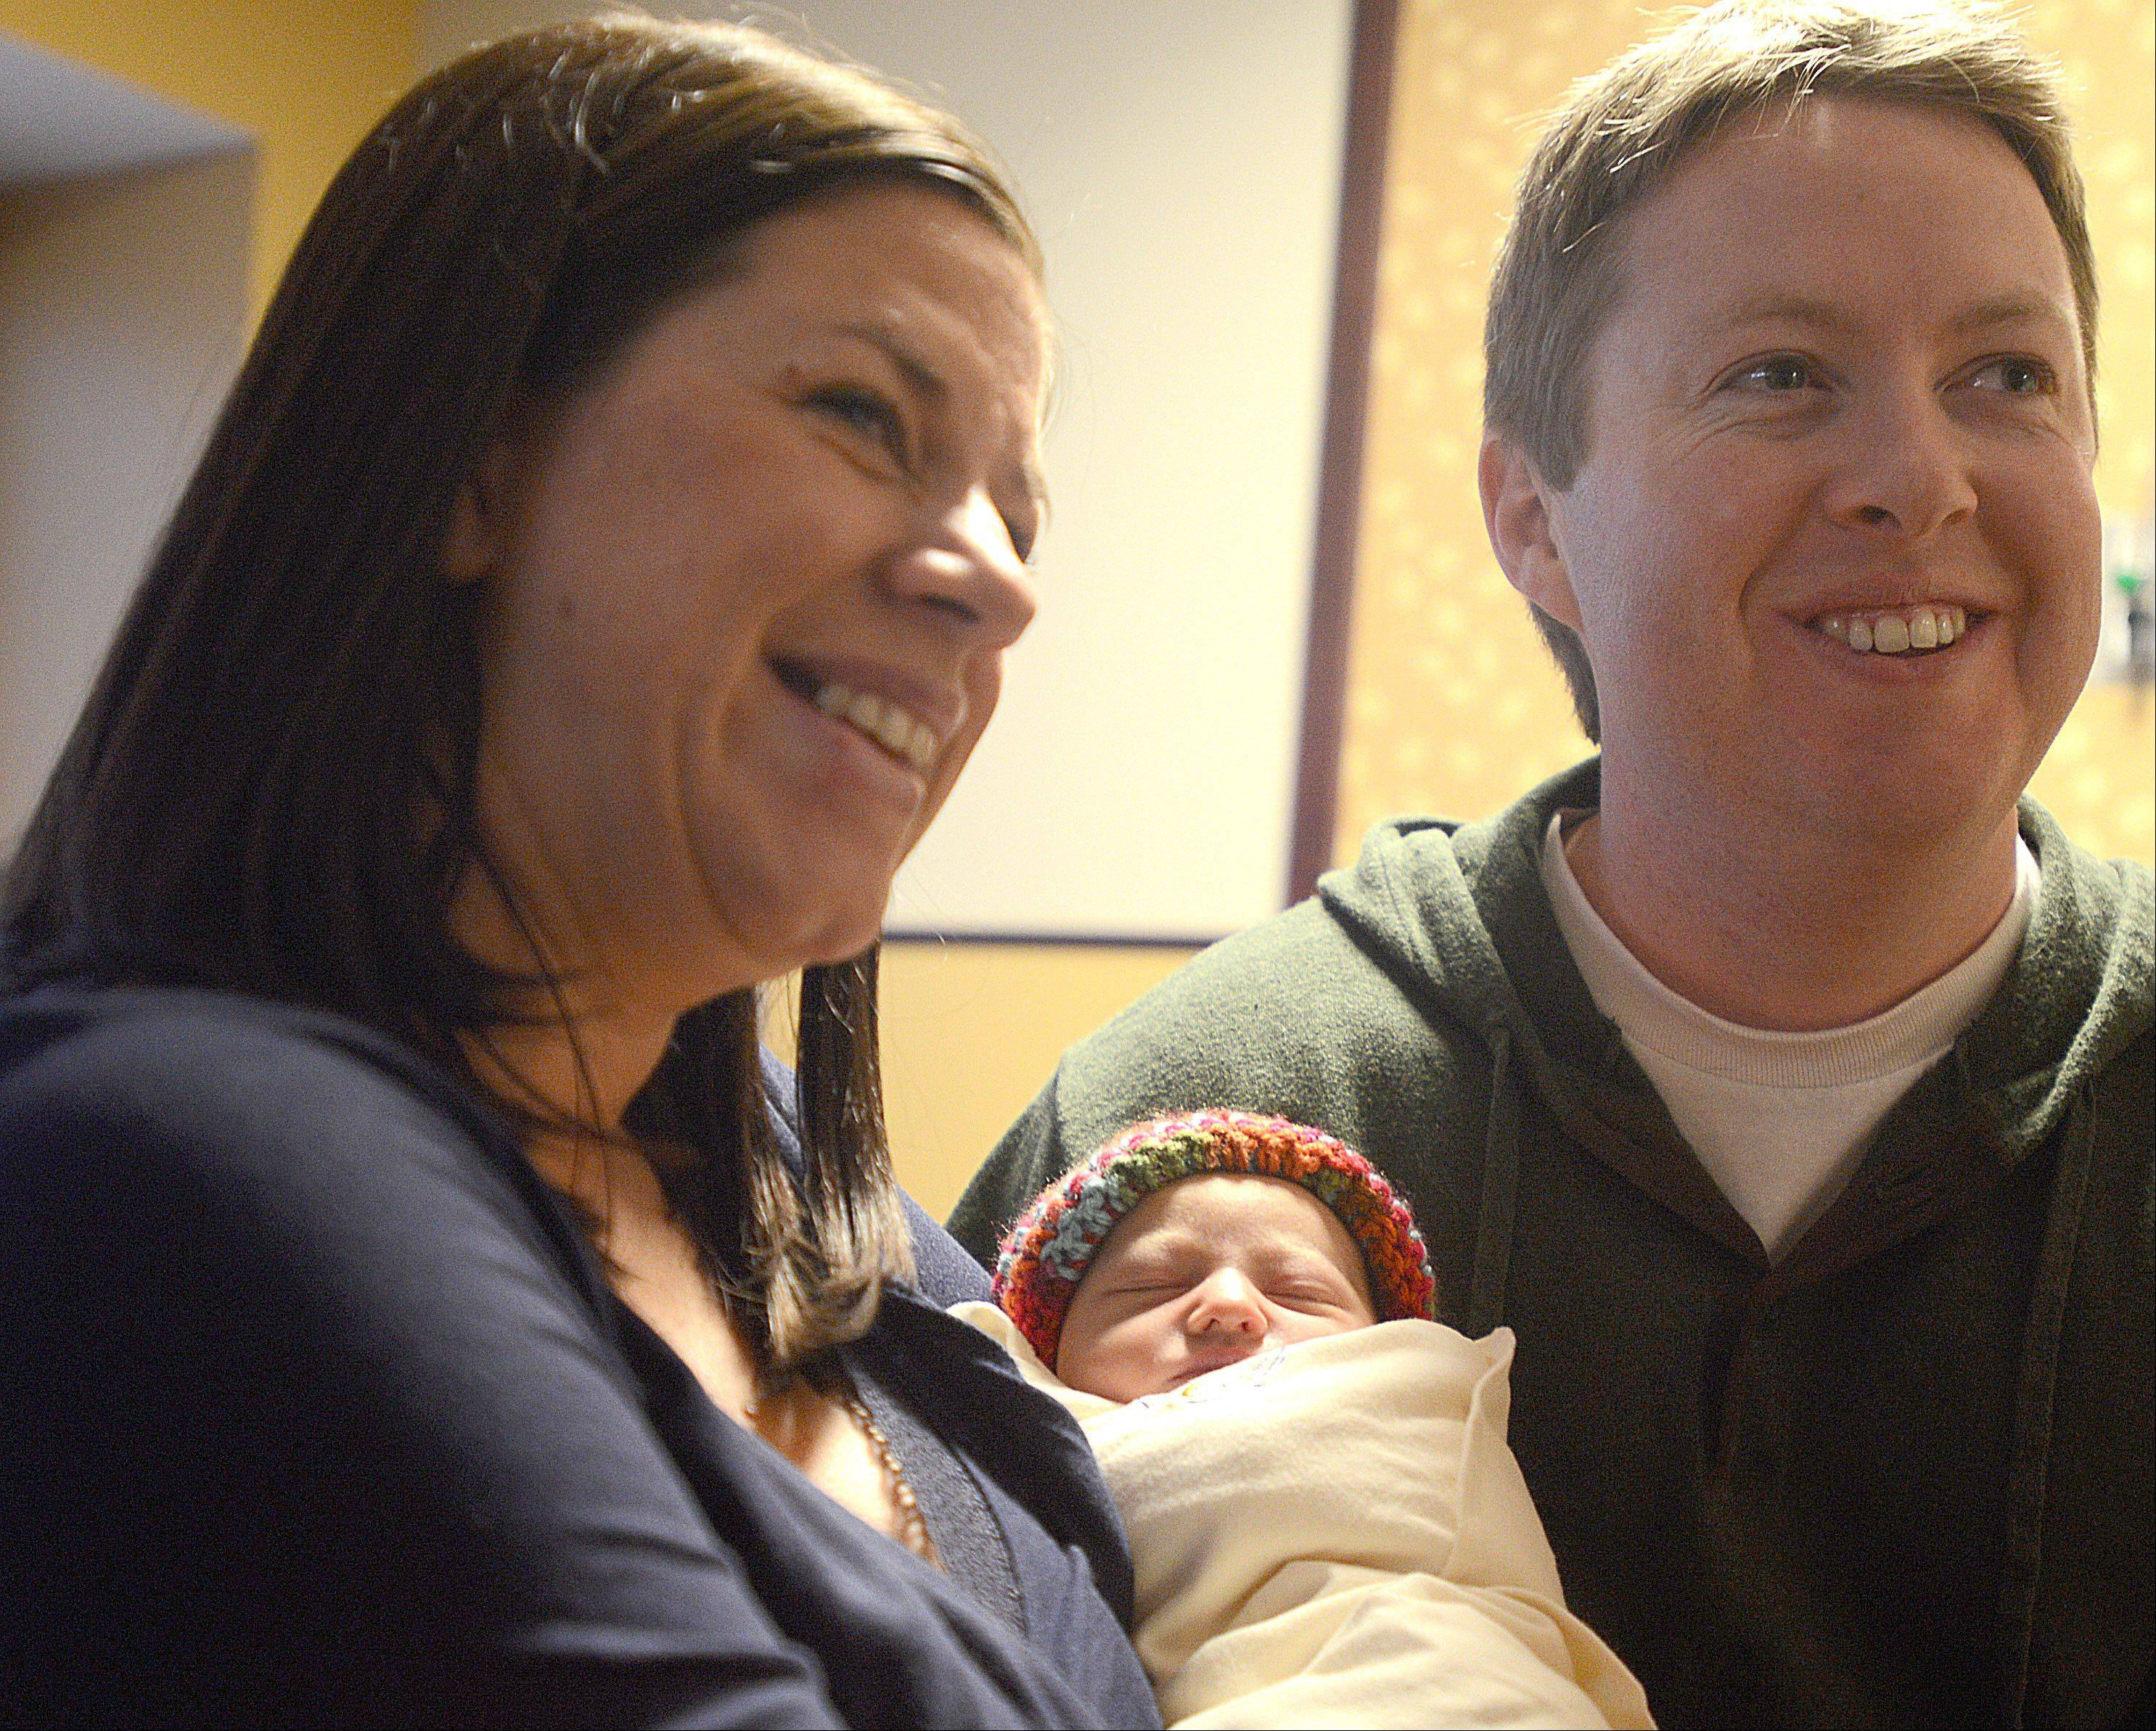 Erin and Jason Curtin of Crystal Lake visit with their daughter, Maci, who was born at 12:31 a.m. on New Year's Day at Advocate Good Shepherd Hospital in Barrington. Maci, who checked in at 6 pounds, 4 ounces and measured 20 inches long, was the first baby born in 2014 in Lake County.